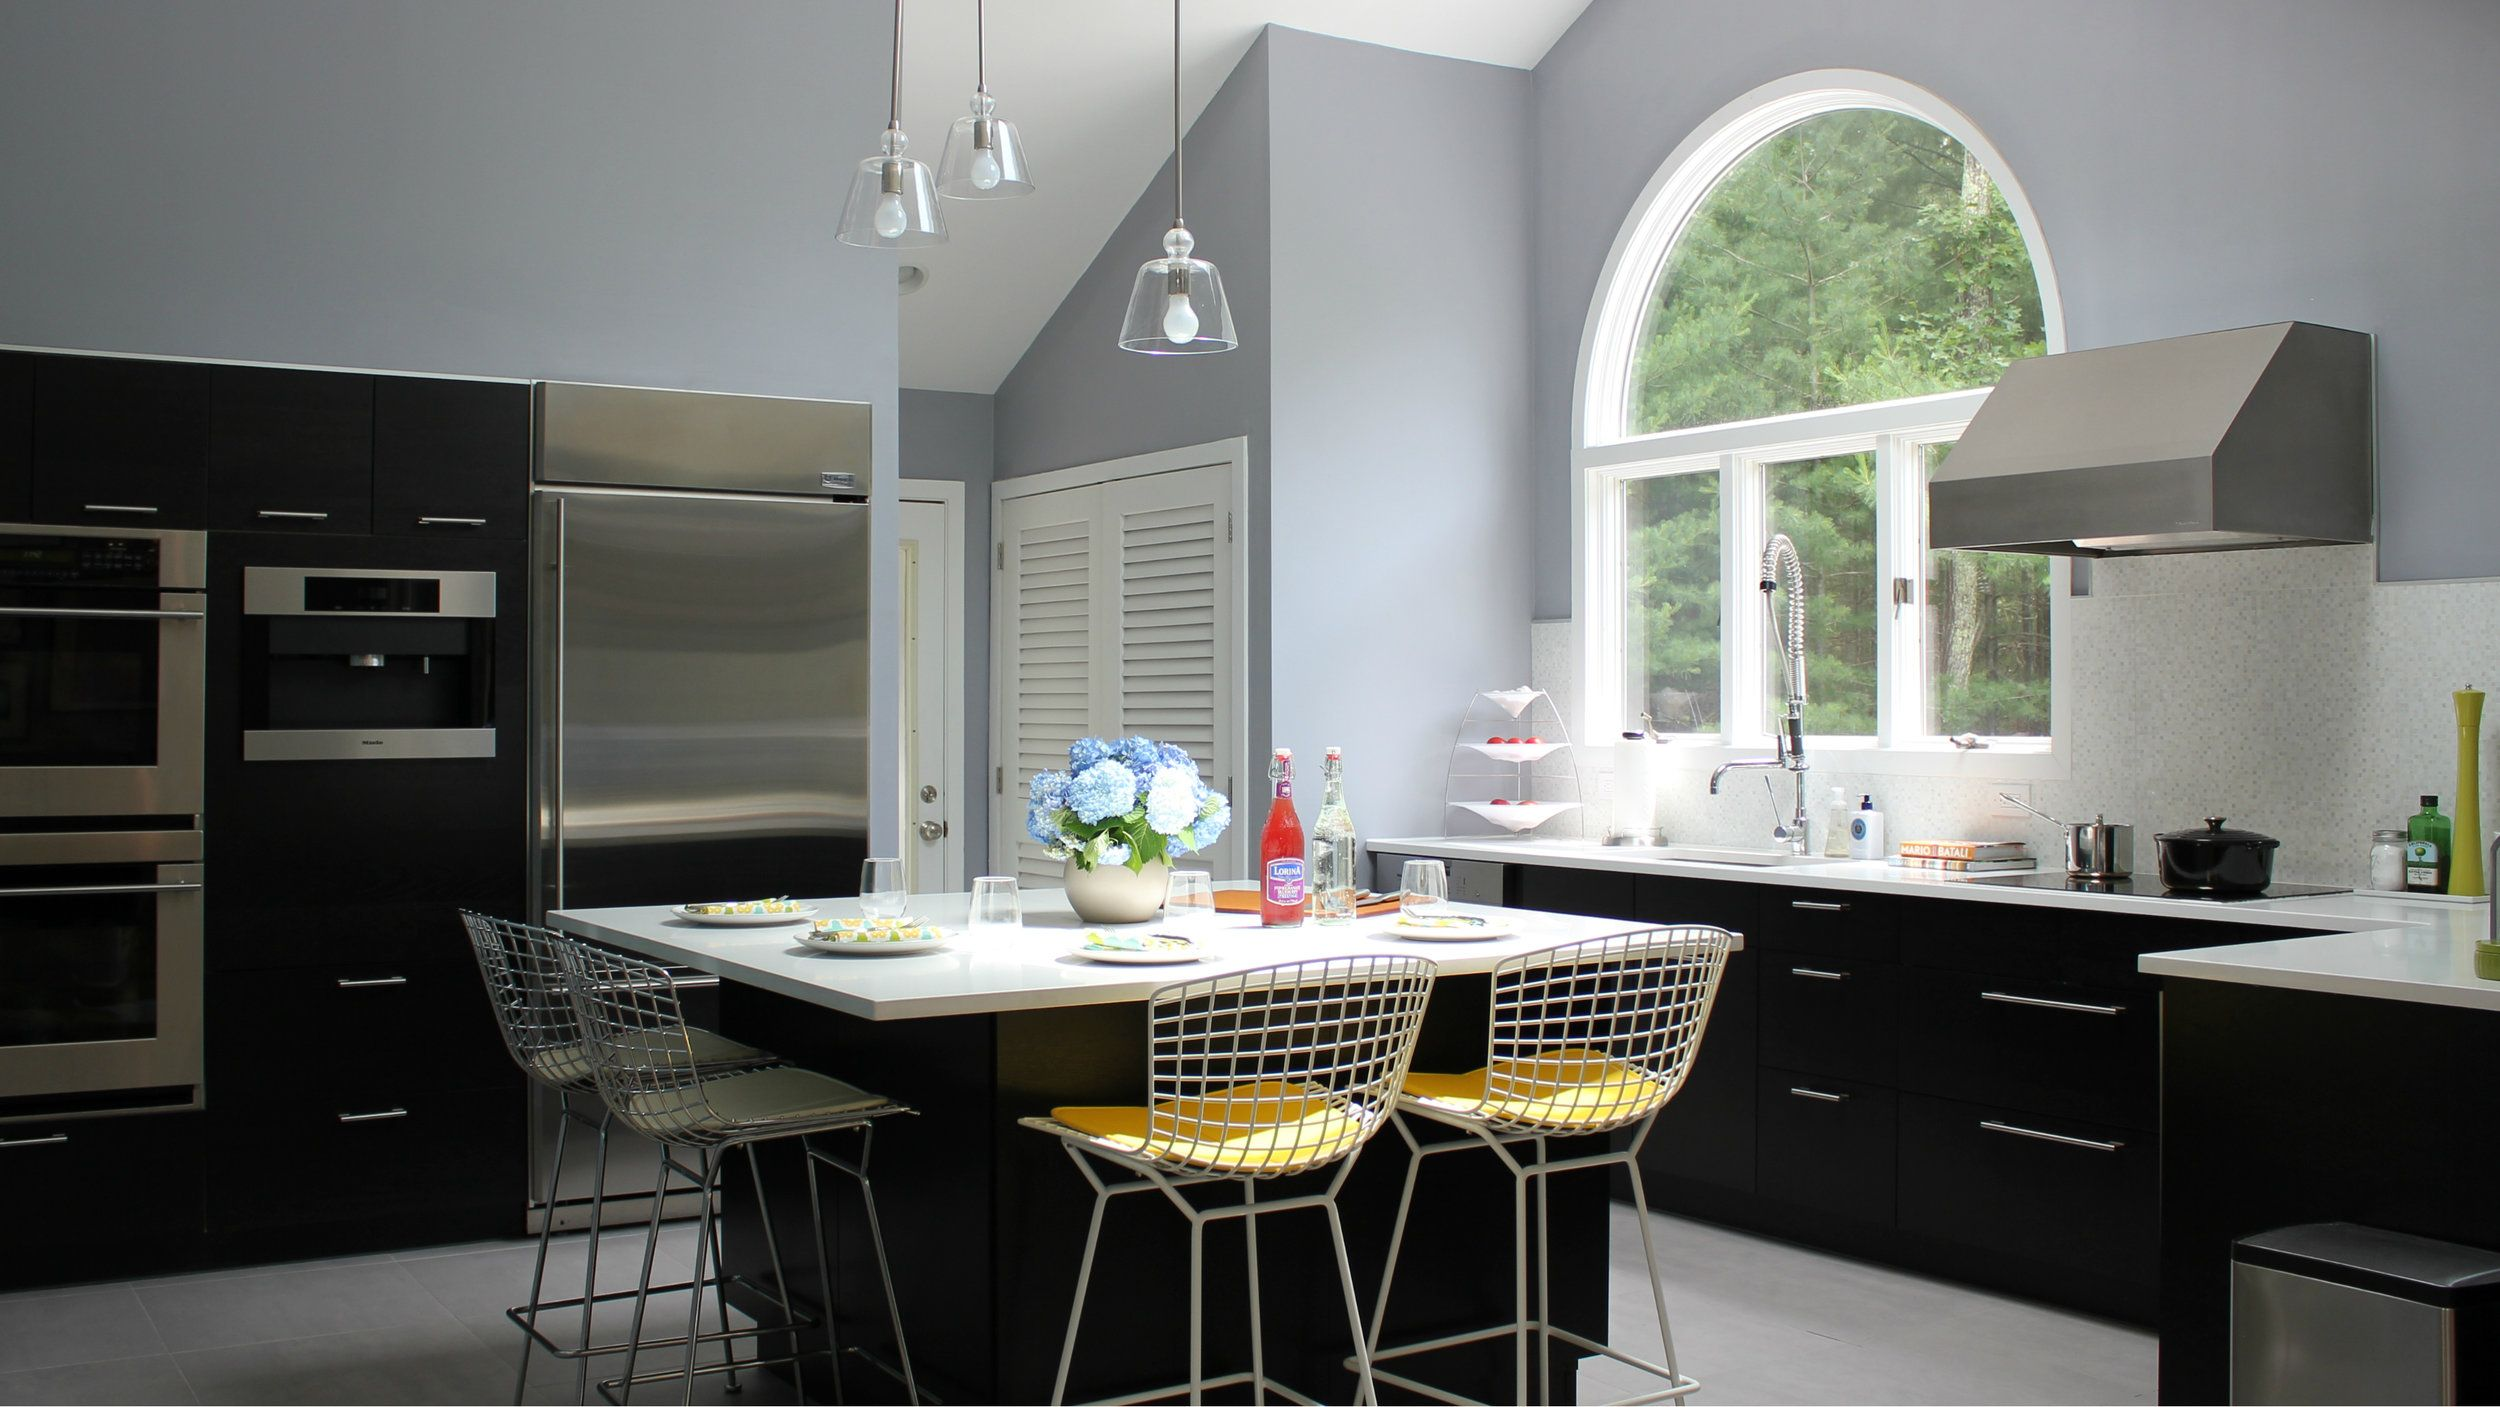 artemis lin design bright and airy kitchen with dark cabinets white counters large island on kitchen remodel timeline id=63921